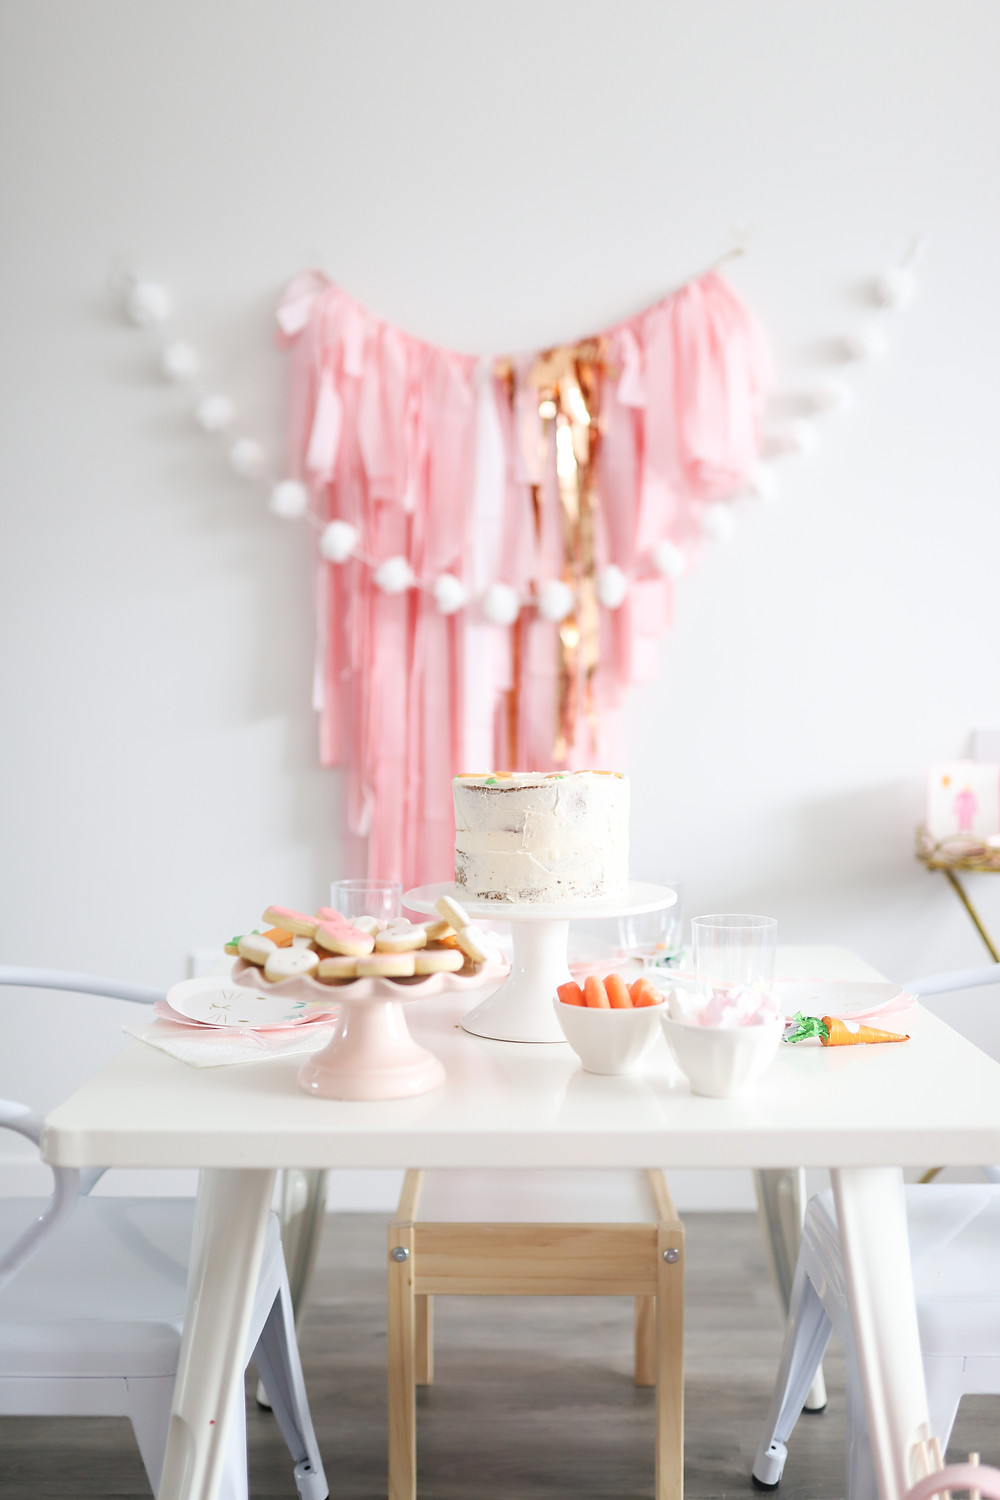 A room decorate with pink garlands and white pom poms for a little girls bunny birthday party at Easter.